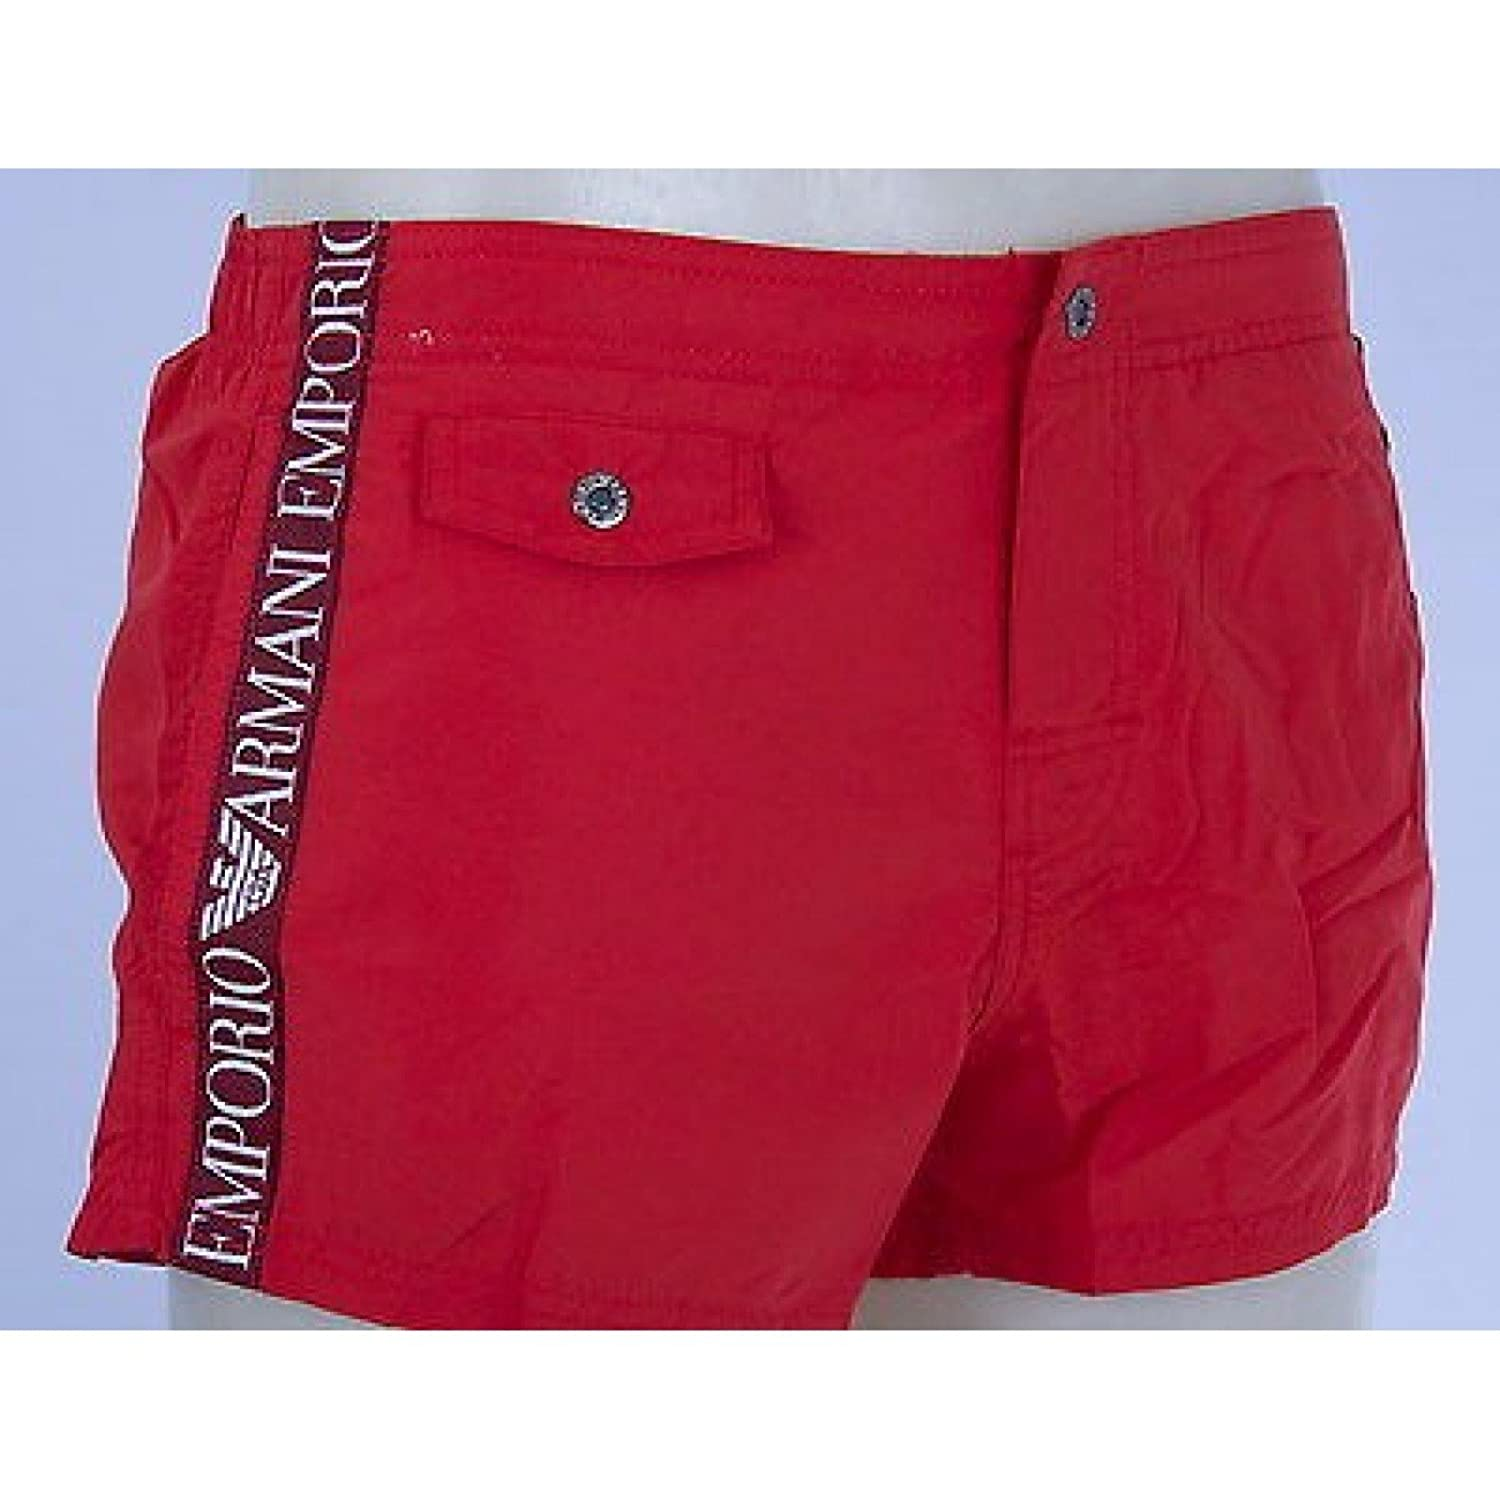 Boxer shorts beachwear EMPORIO ARMANI 211272 4P420 t. c. 05774 RED XL